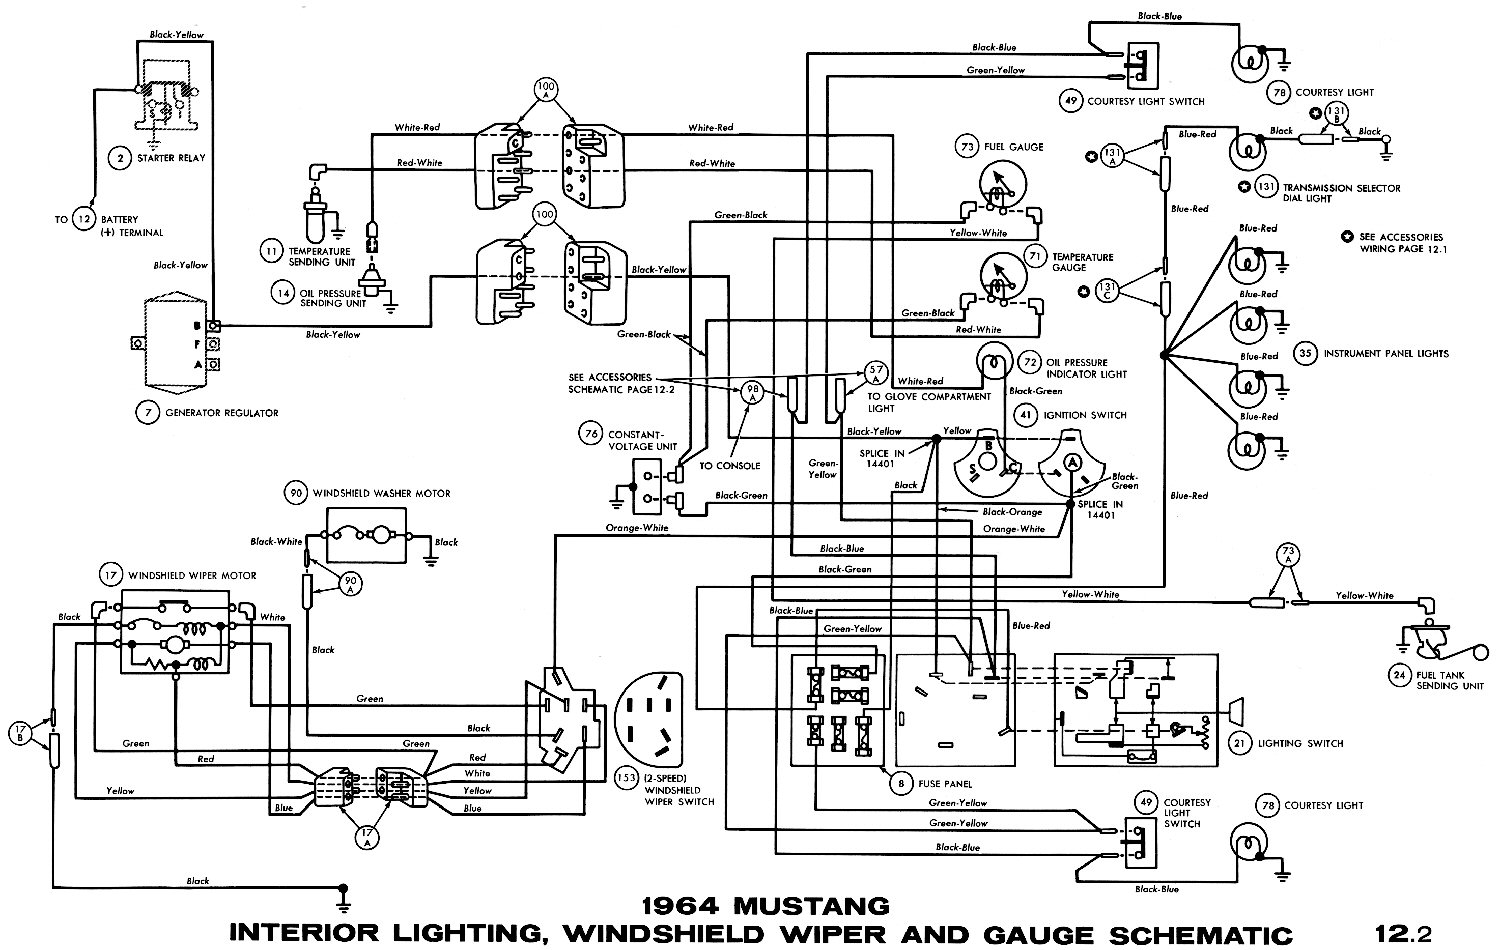 1964 ford ignition switch diagram 1993 ranger stereo wiring mustang diagrams - average joe restoration